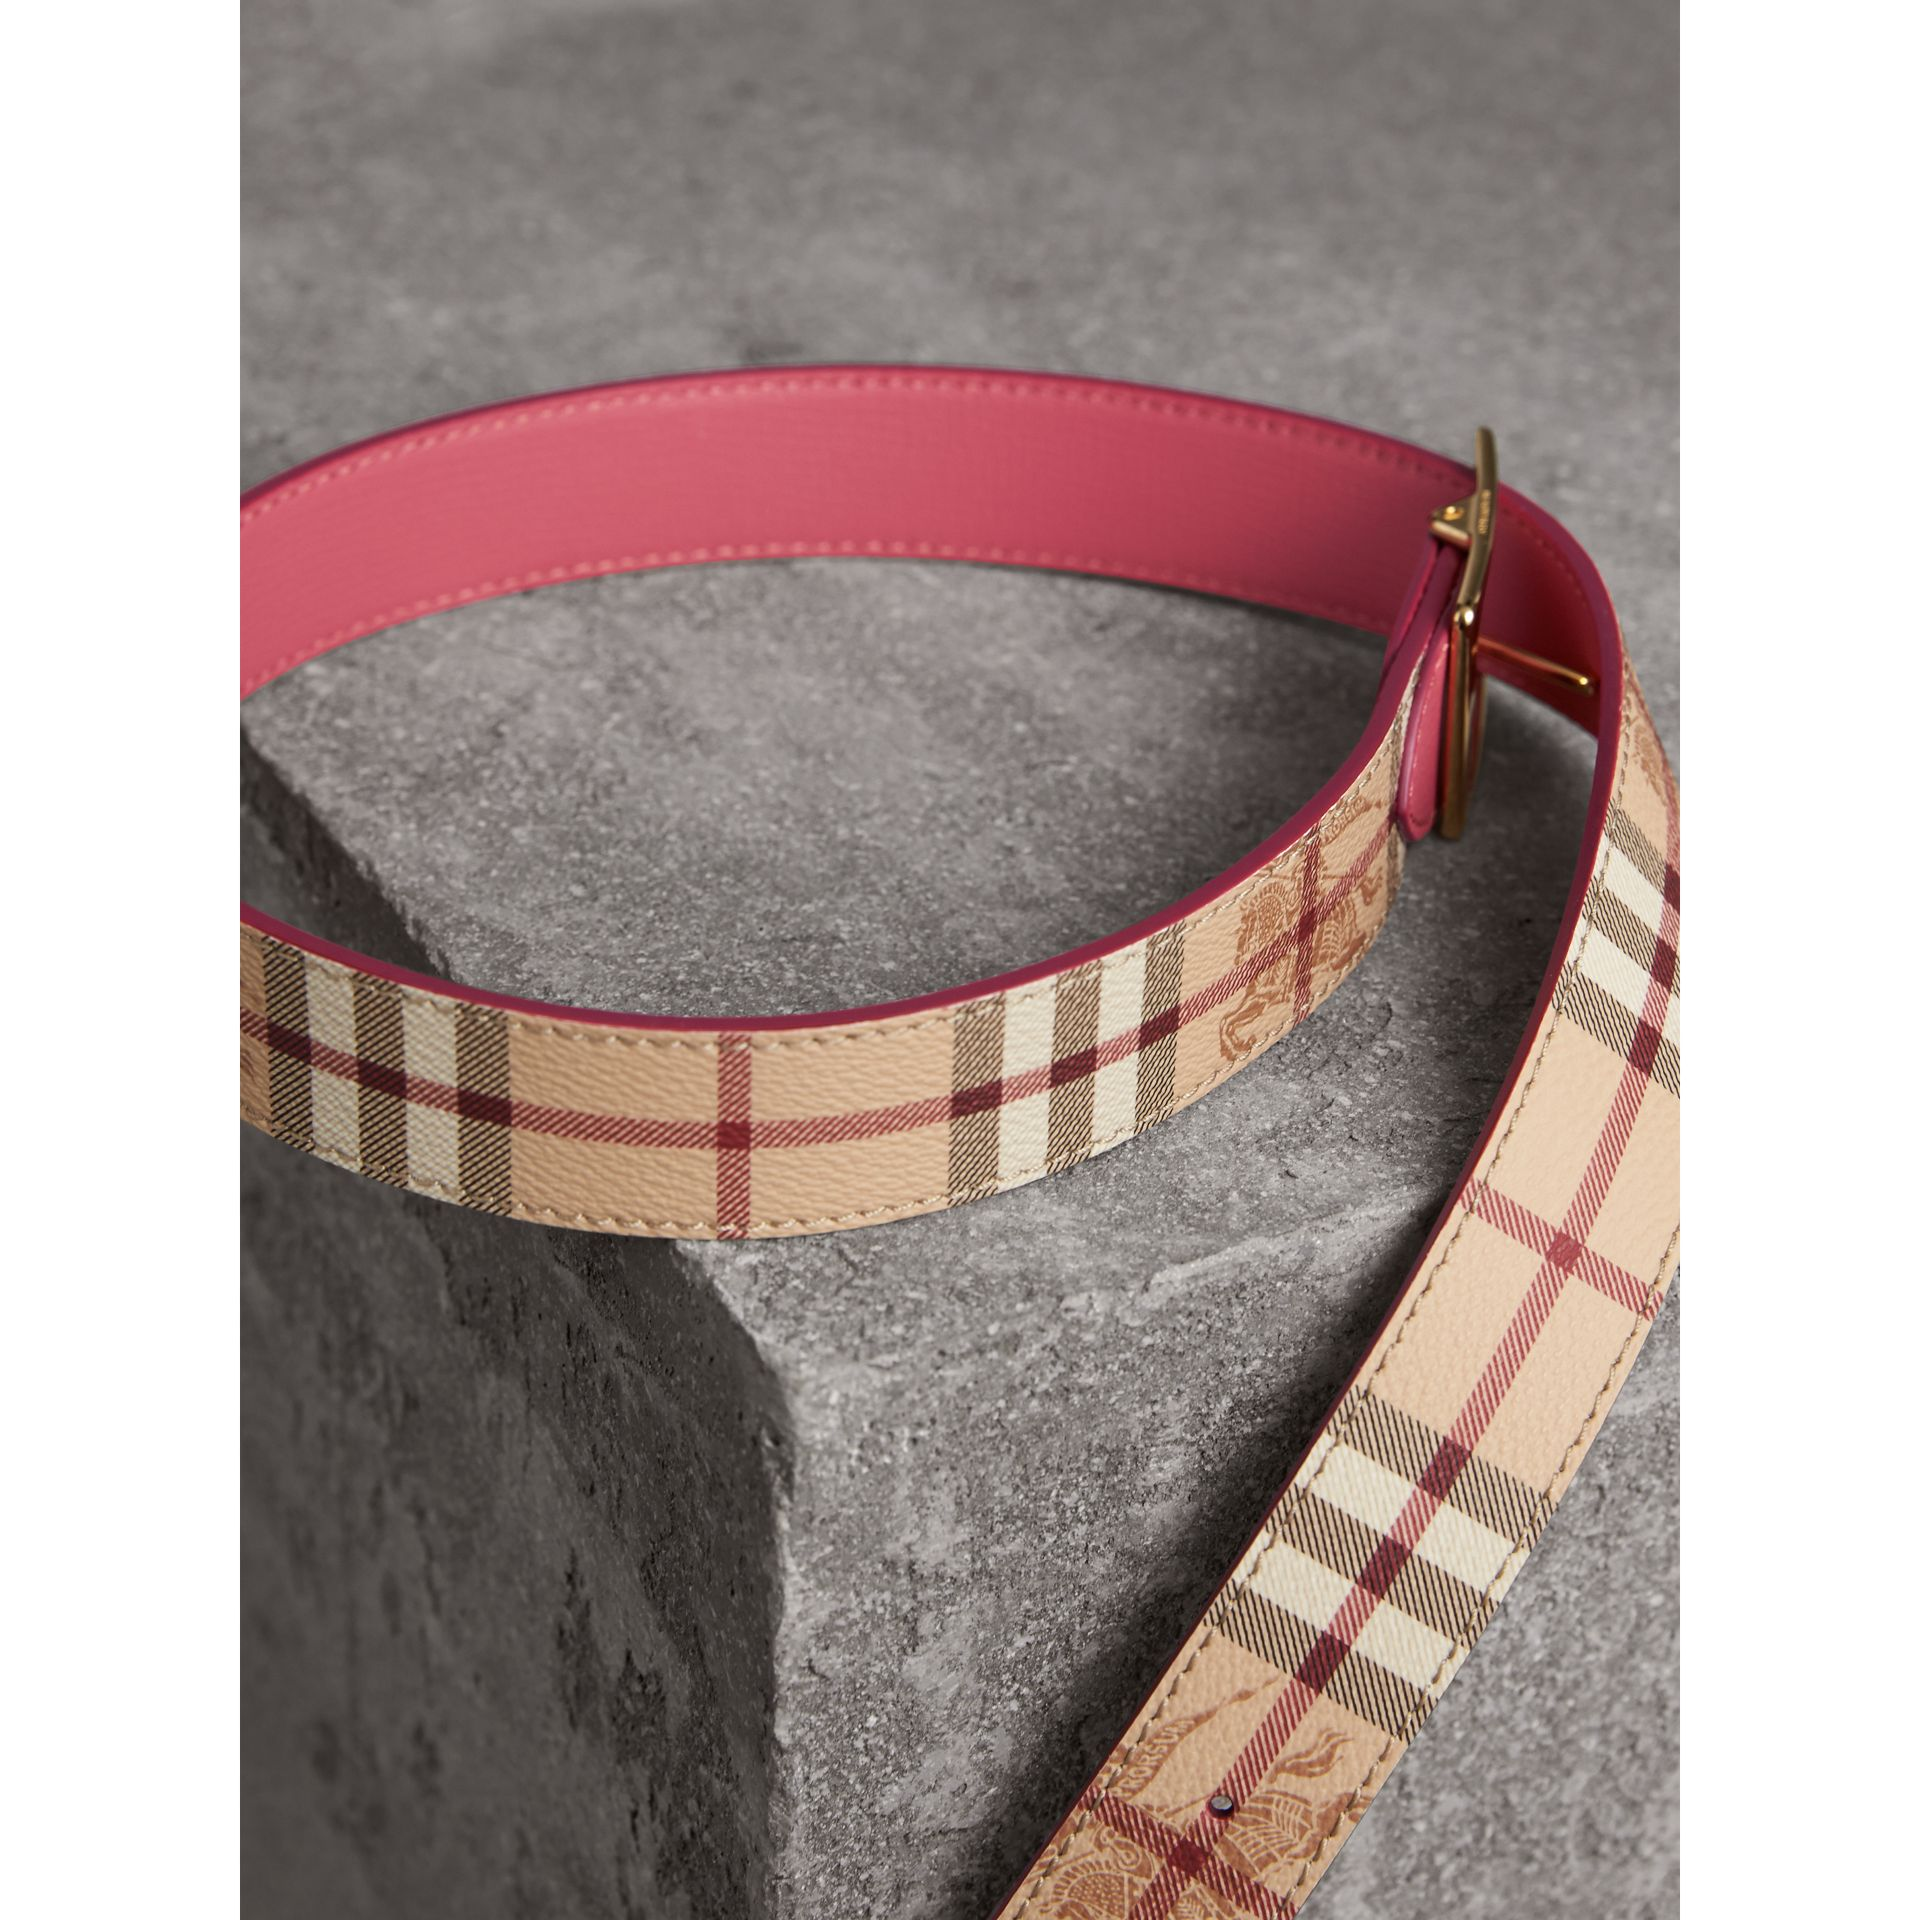 Riveted Reversible Check and Leather Belt in Plum Pink - Women | Burberry - gallery image 3